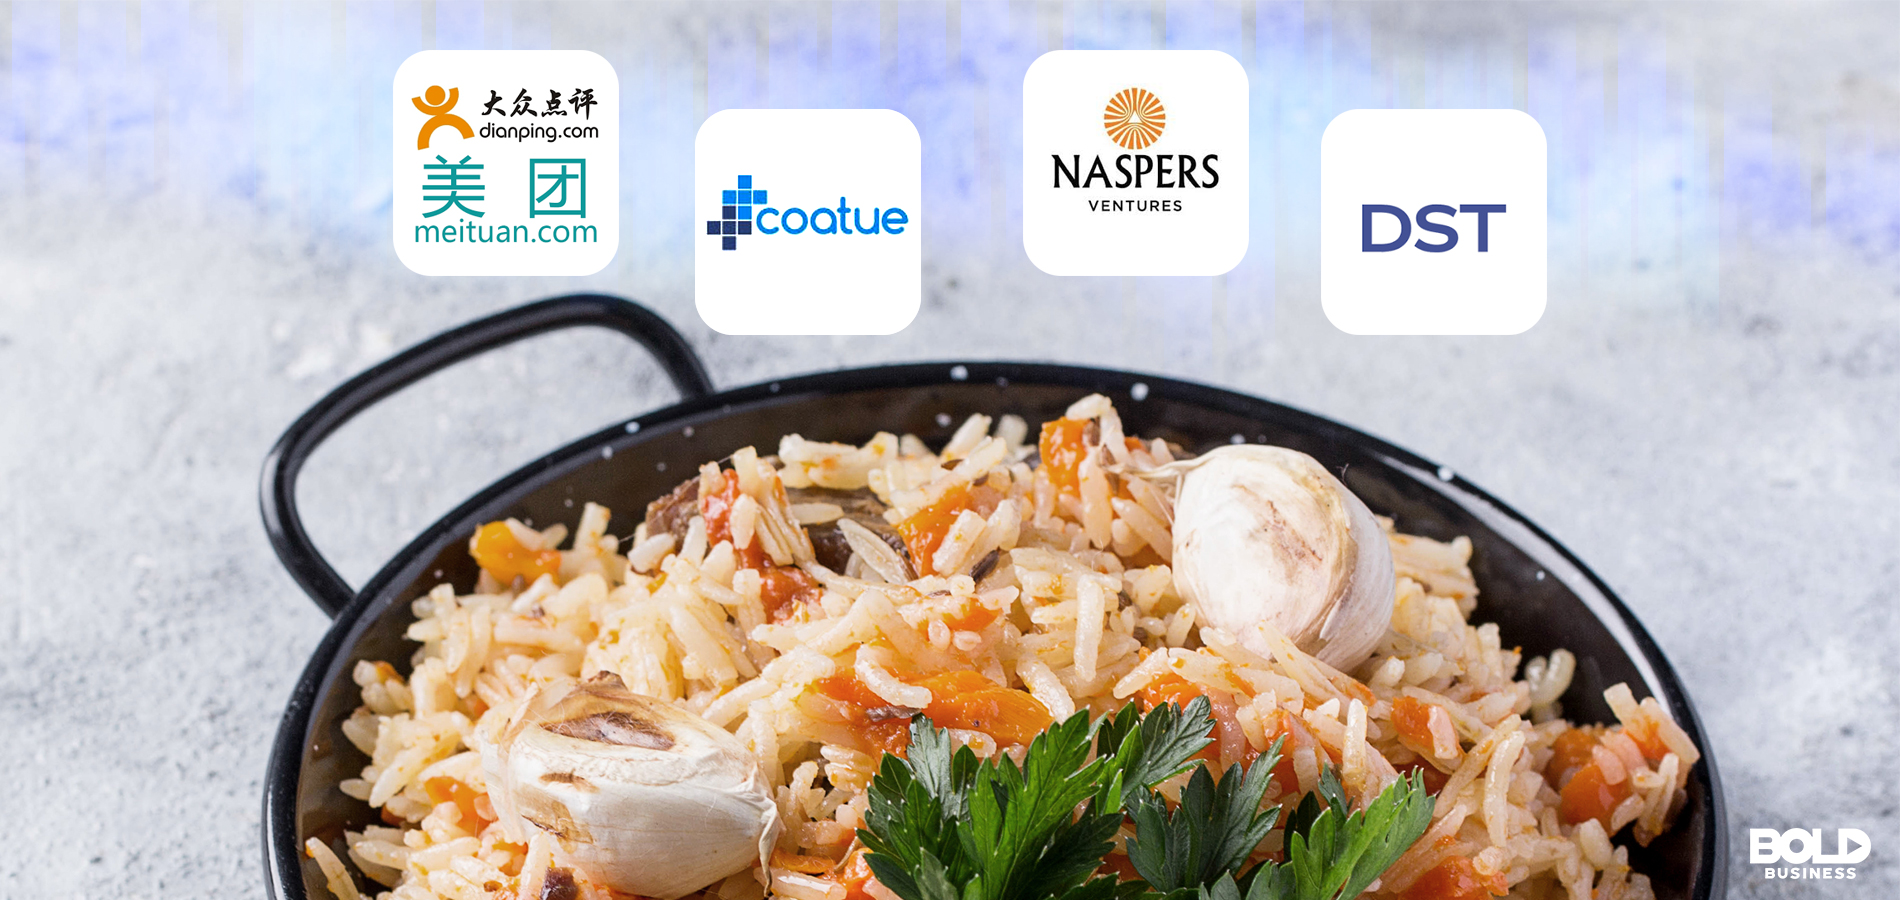 logos of companies leading food delivery business in India